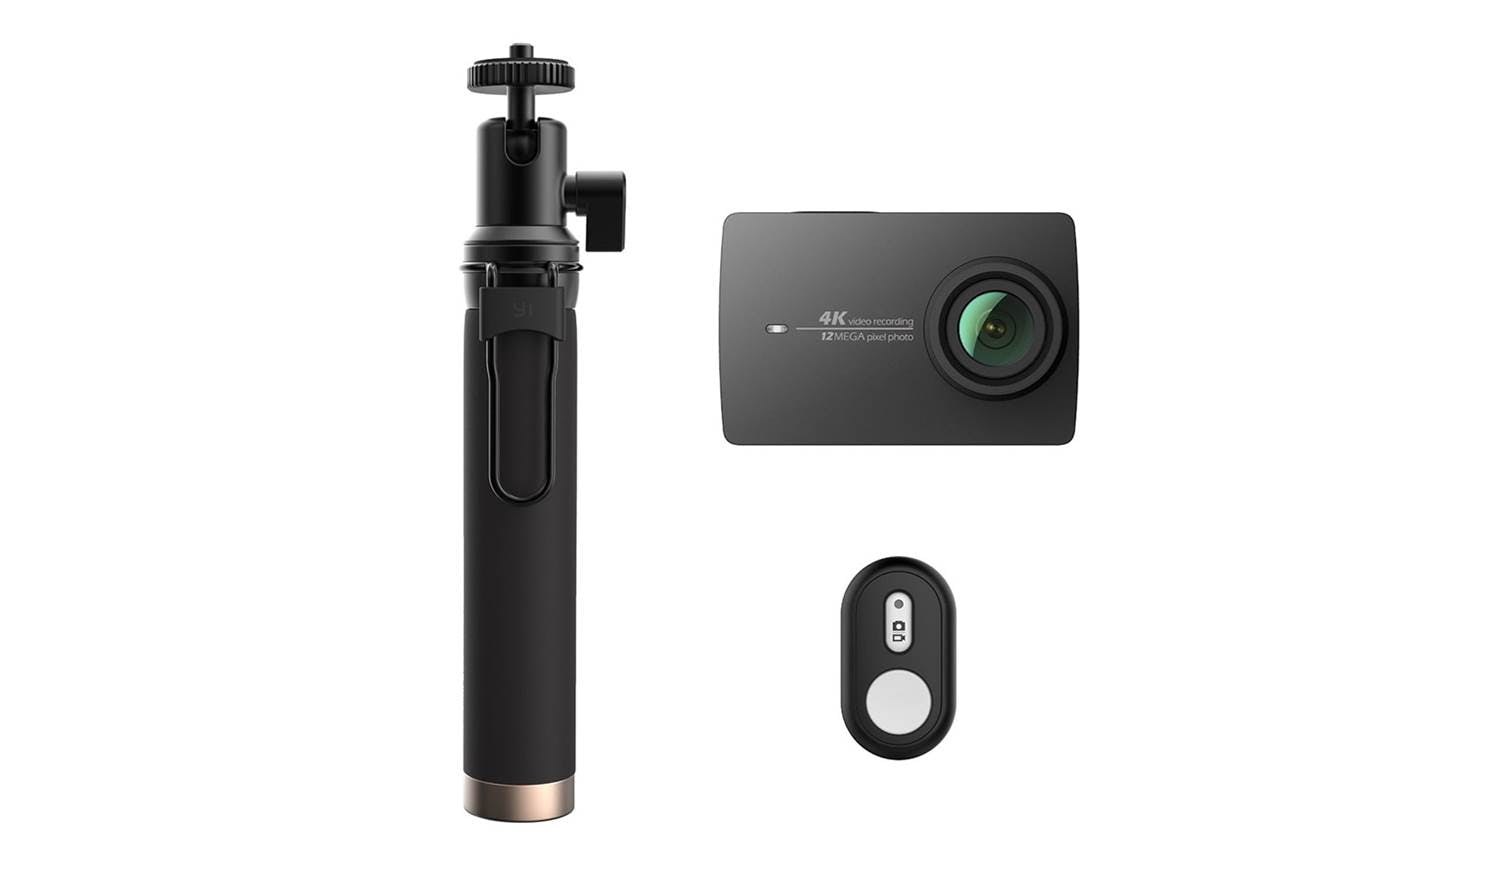 xiaomi yi 4k action camera 2 bluetooth kit night black. Black Bedroom Furniture Sets. Home Design Ideas